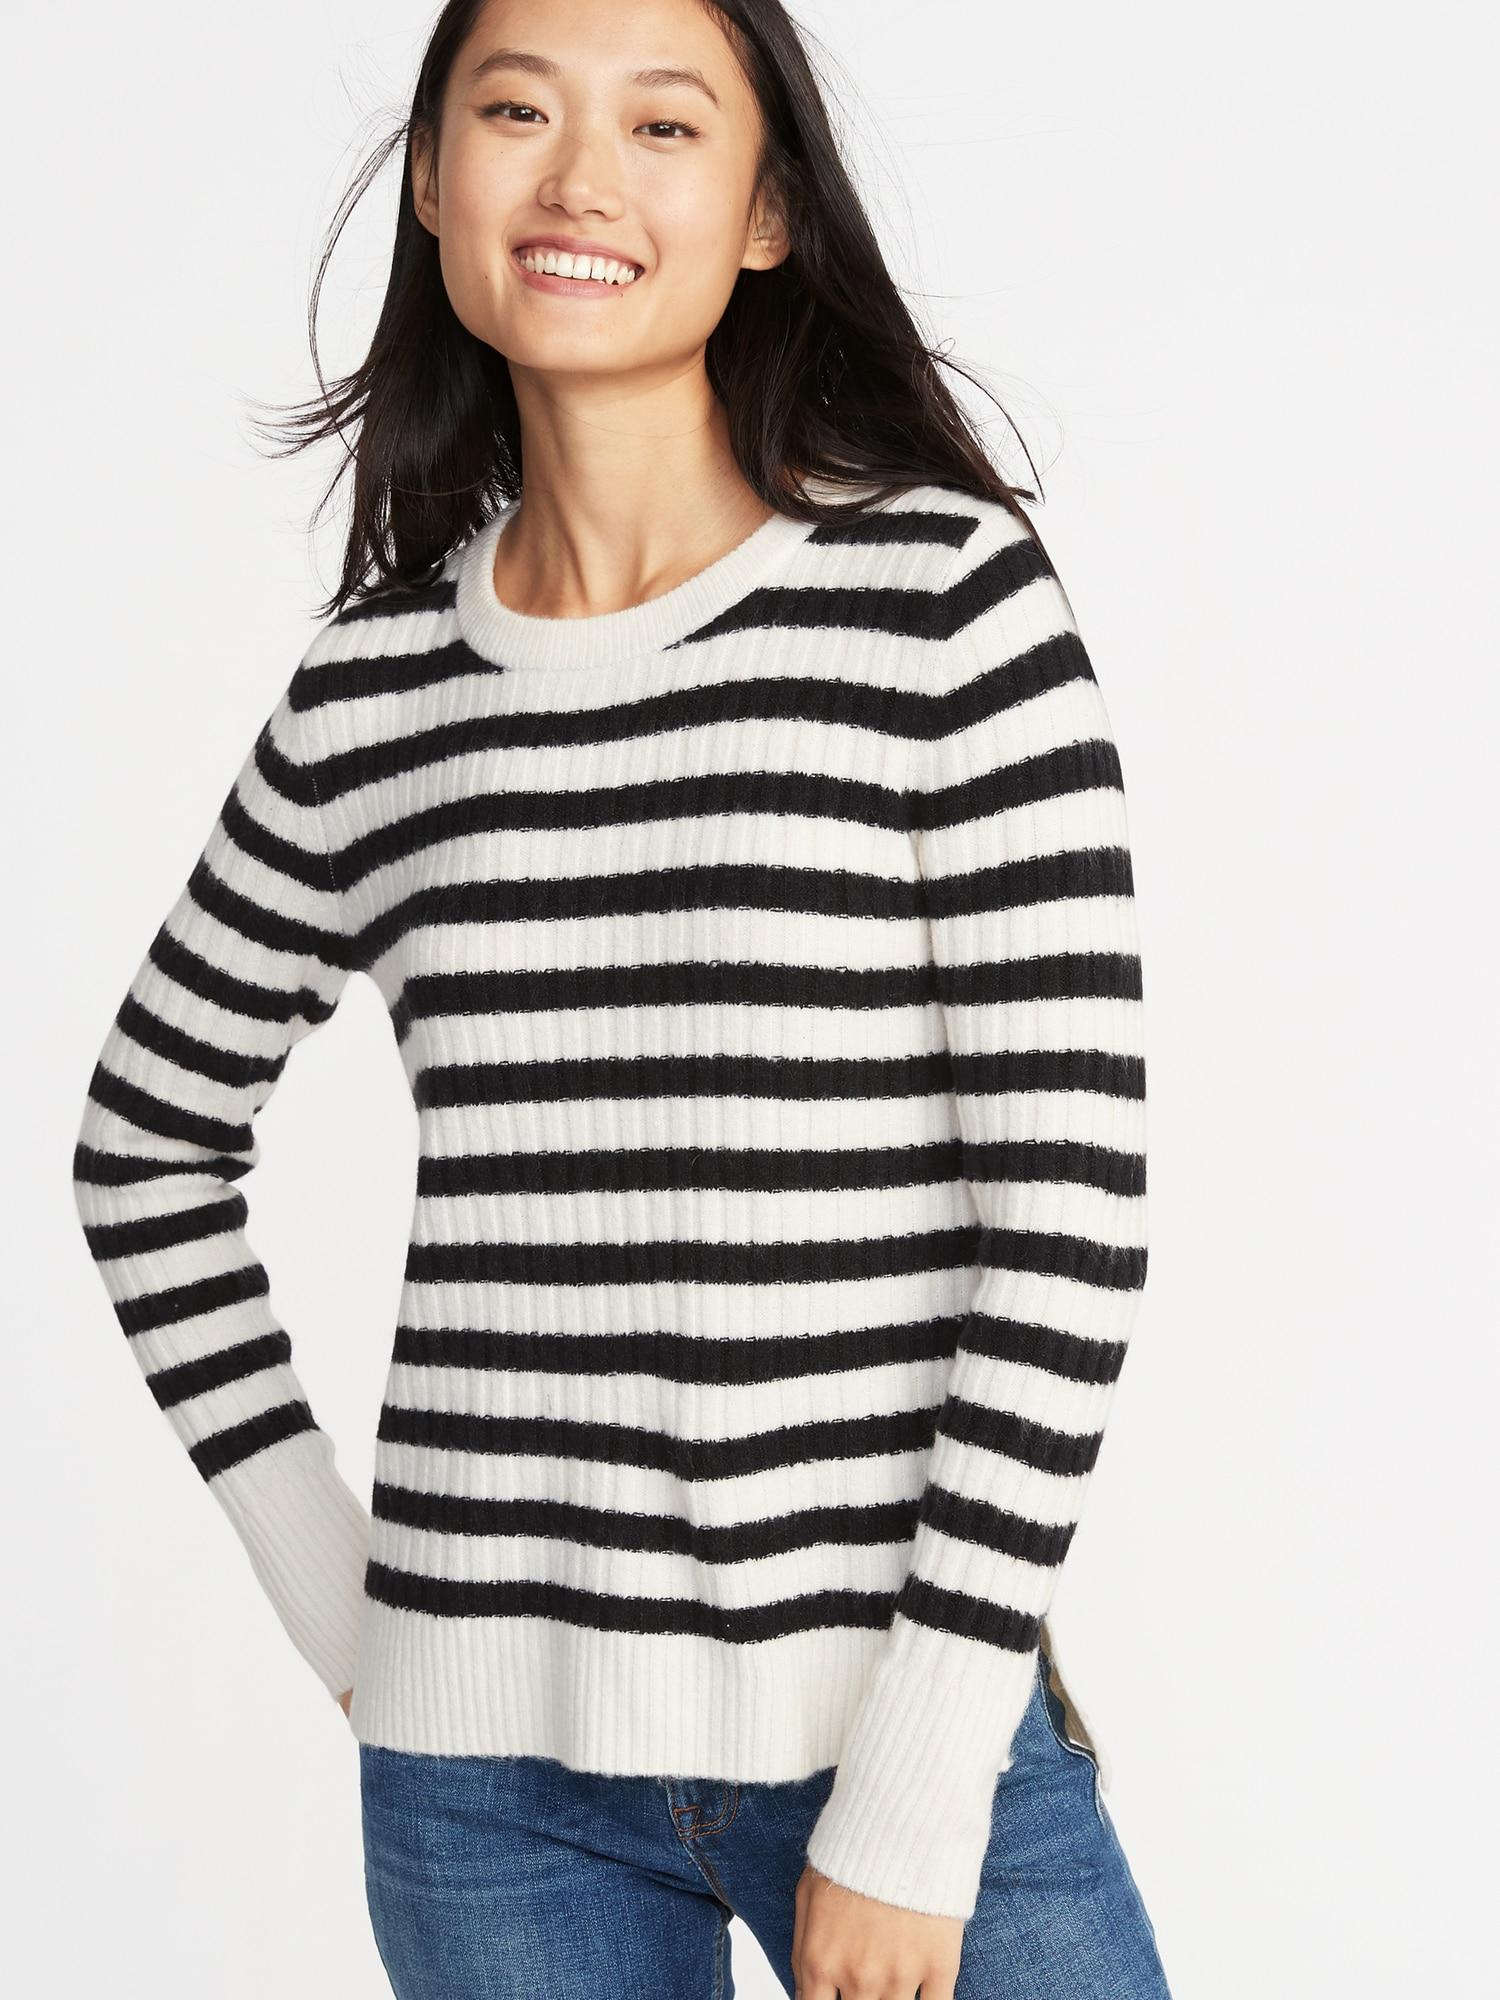 31e7cabbe22 Lyst - Old Navy Cozy Crew-neck Sweater in Blue - Save 77%